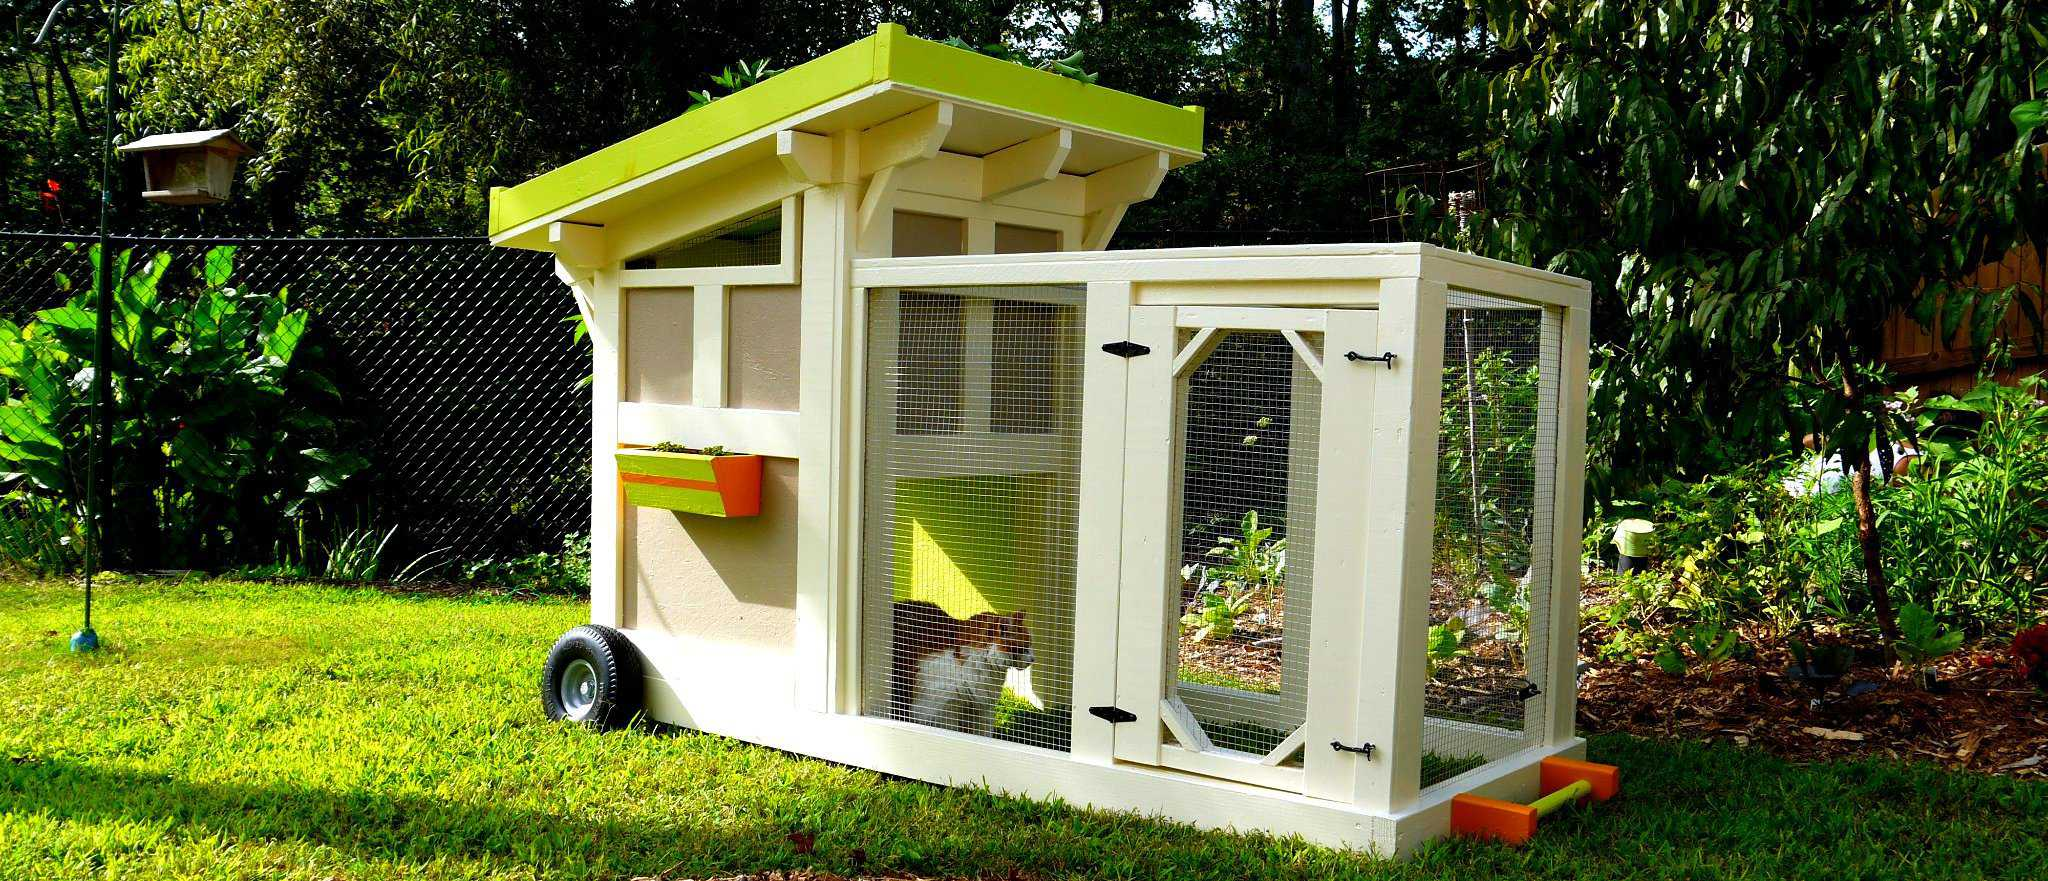 The quacker box a green roof duck house or duck coop for Duck run designs